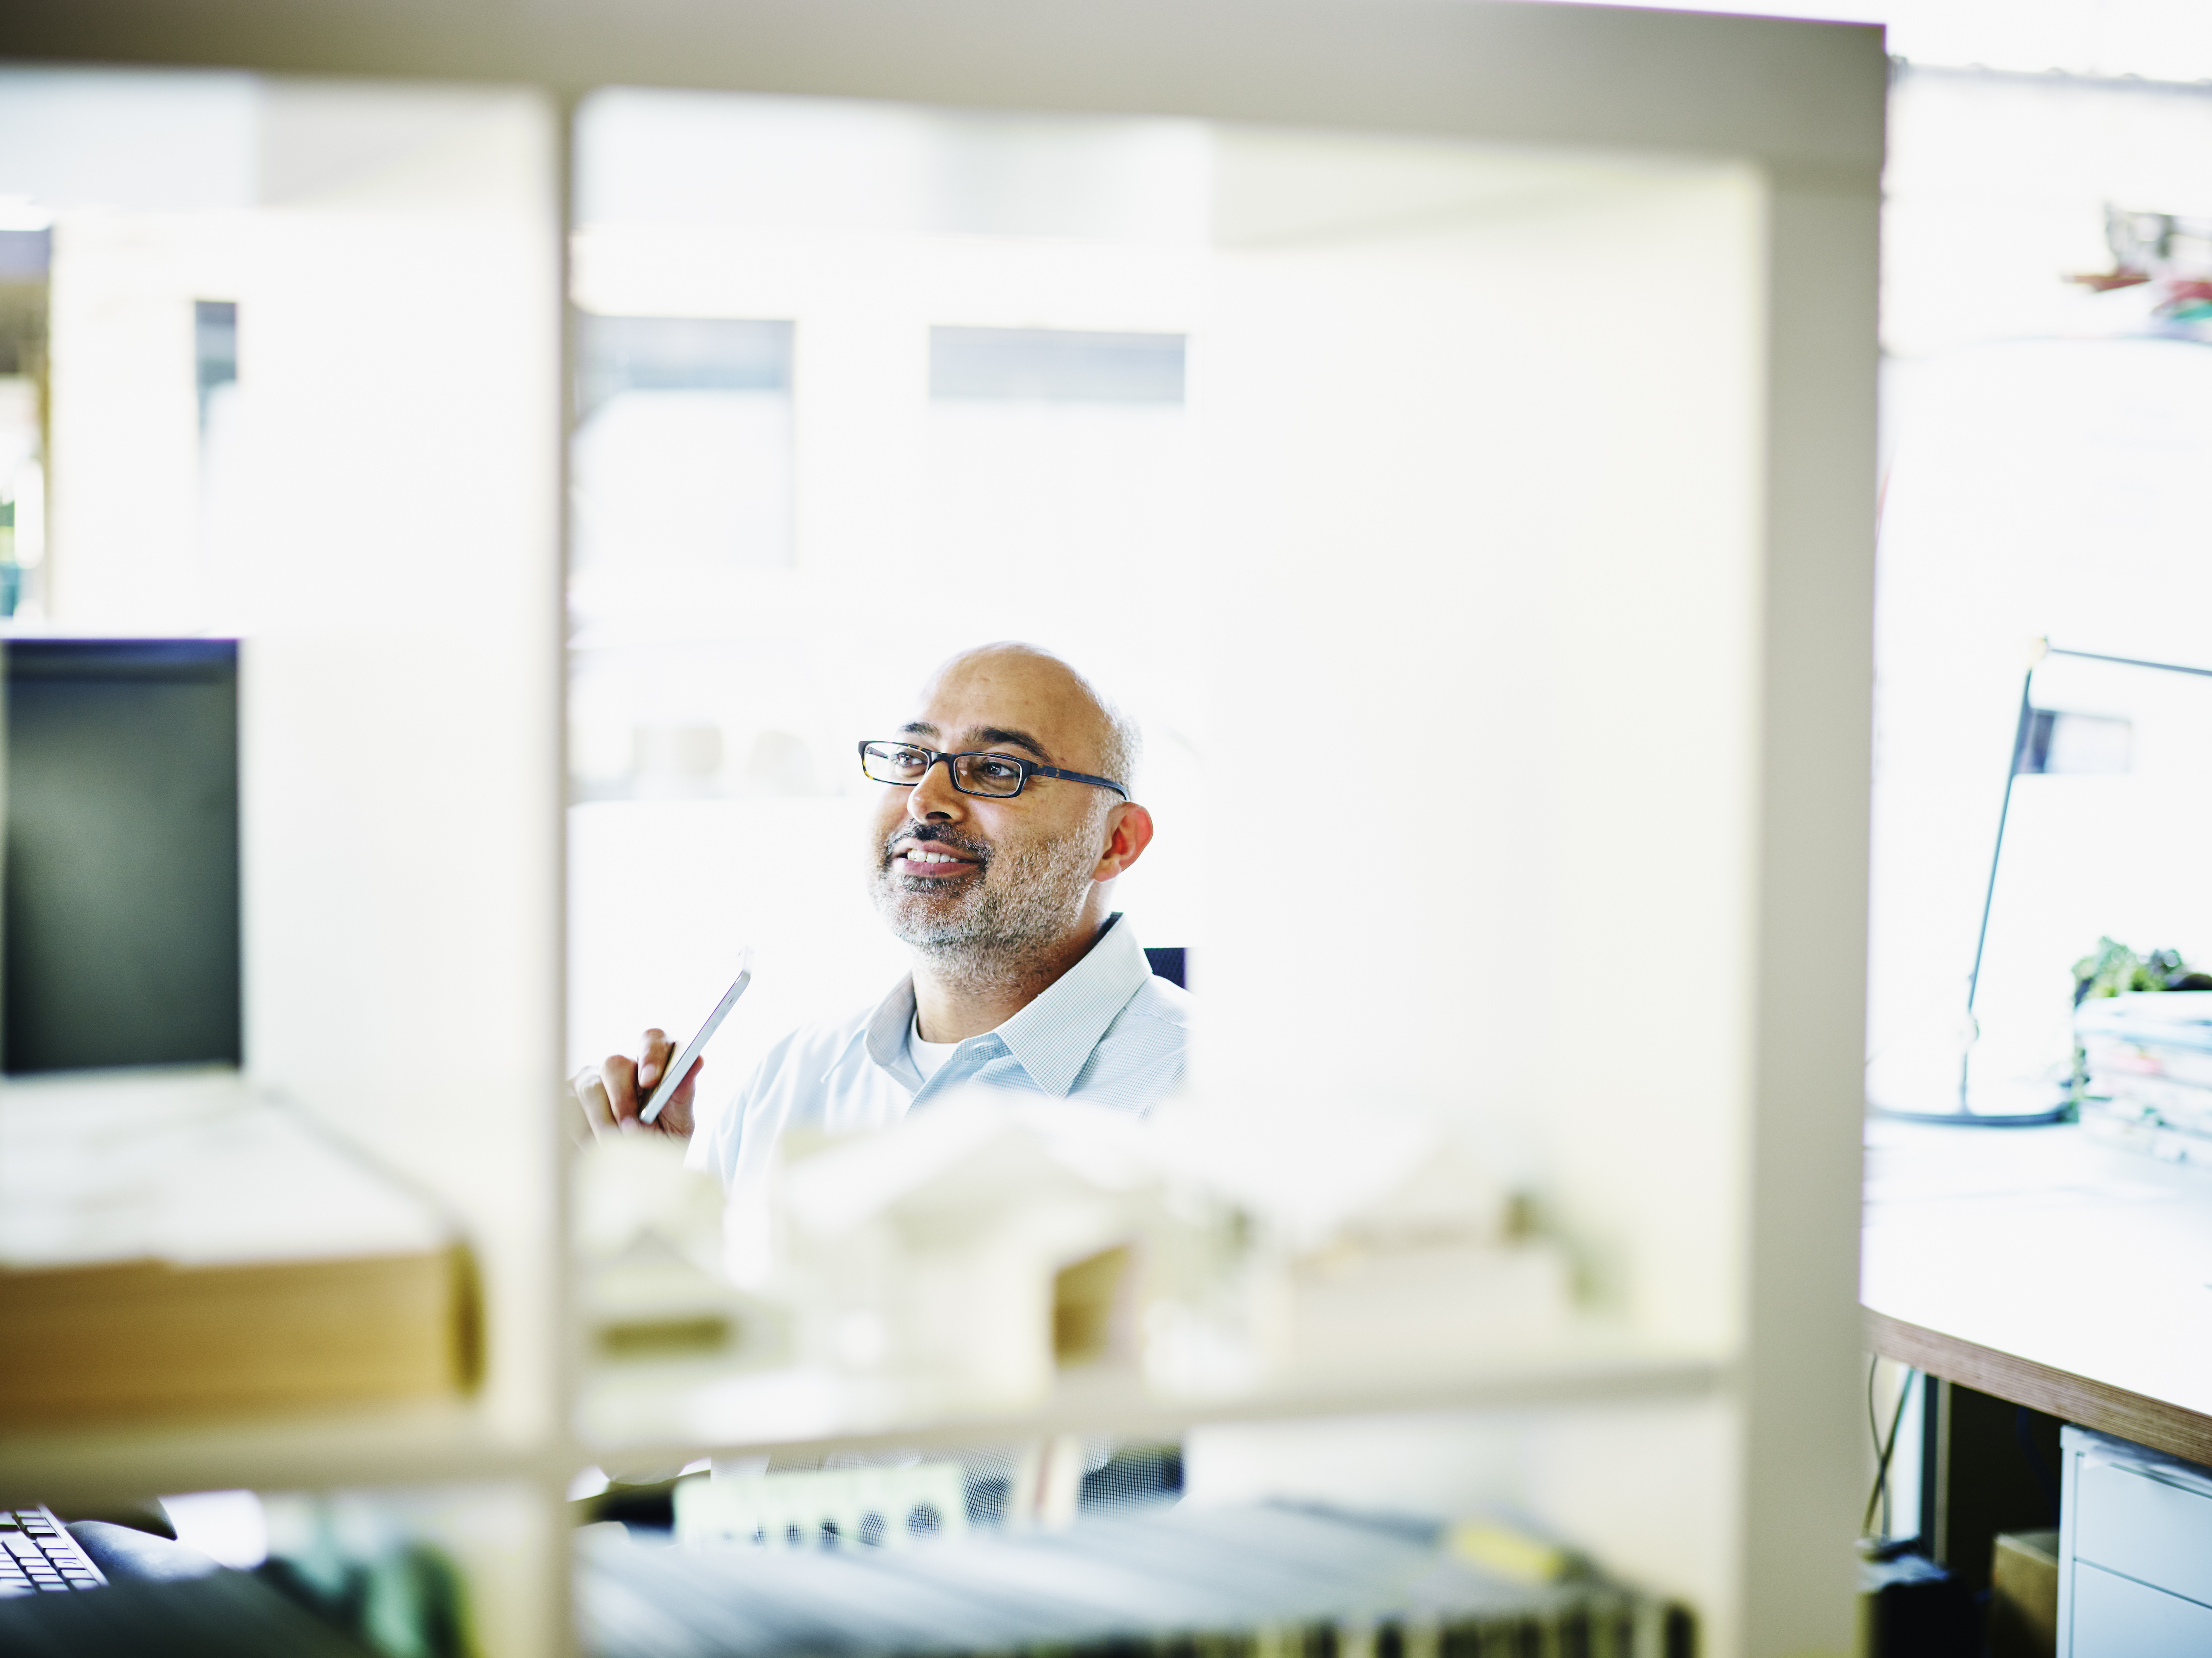 Smiling small business owner sitting in office